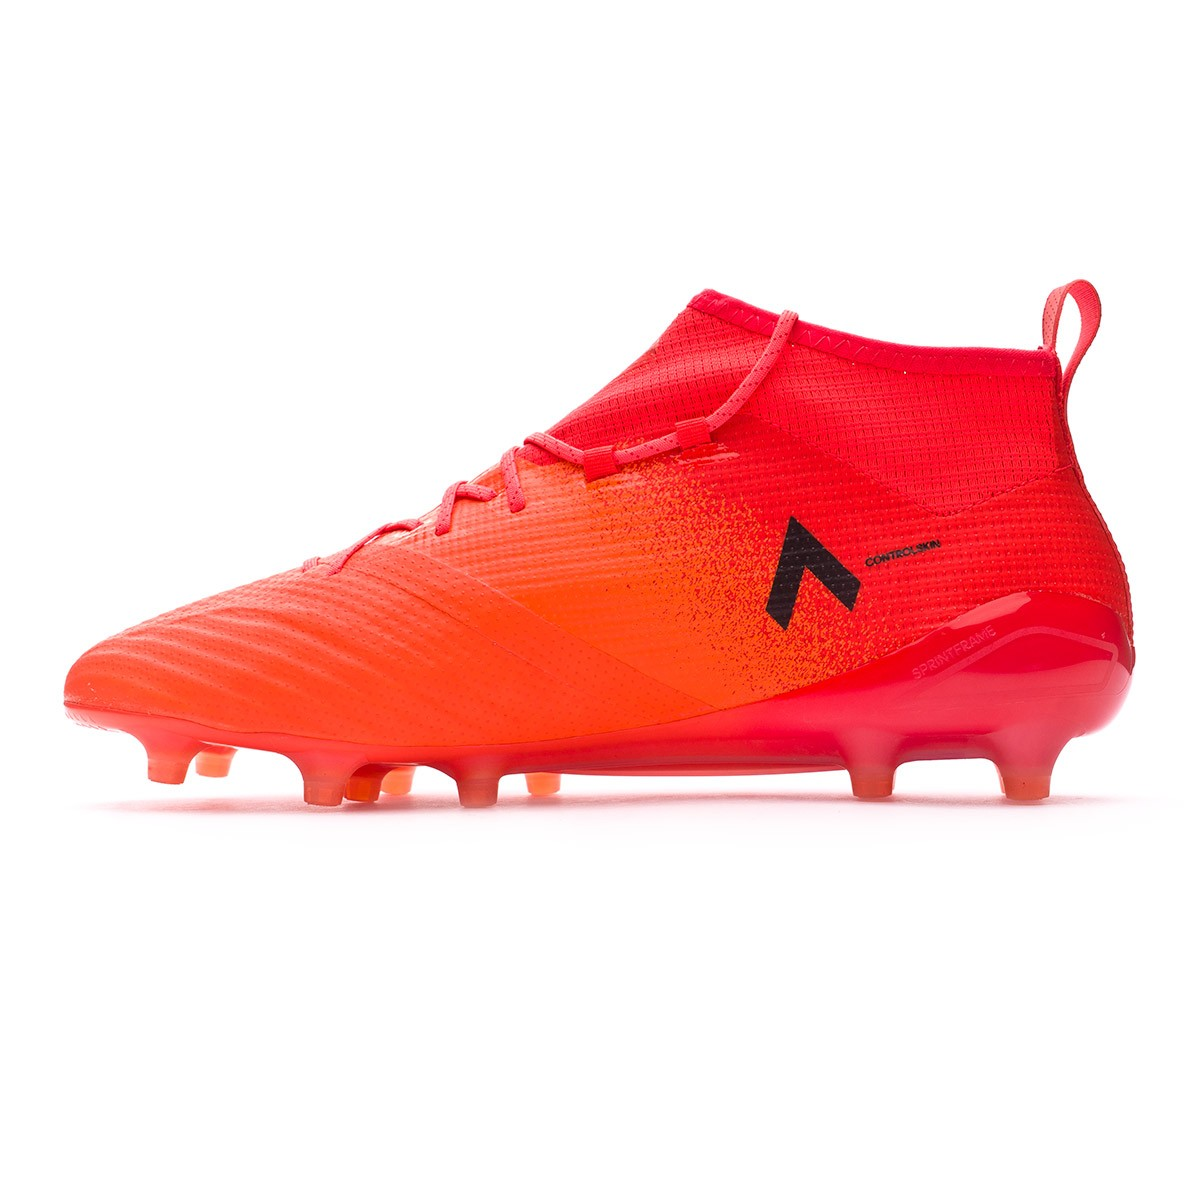 timeless design 6de9b 6cdae Boot adidas Ace 17.1 Primeknit FG Solar orange-Core black-Solar red -  Football store Fútbol Emotion